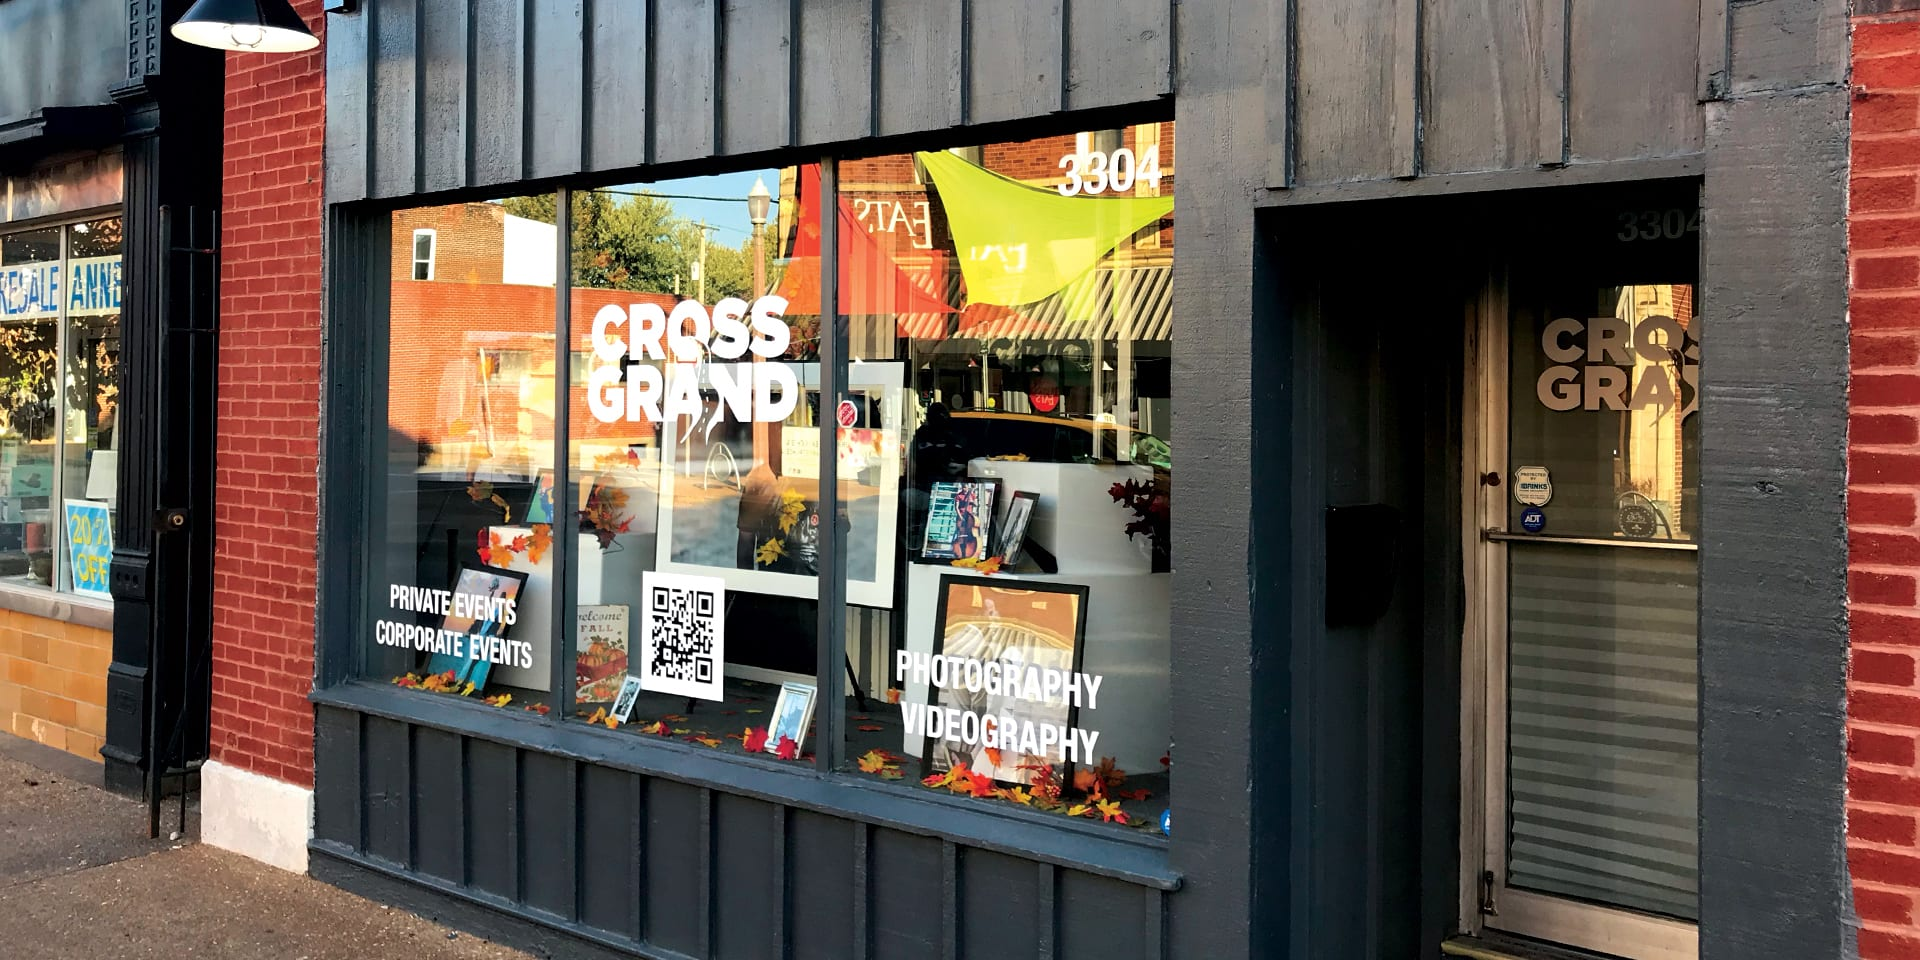 The studio of Cross Grand, 3304 Meramec Street in Downtown Dutchtown.